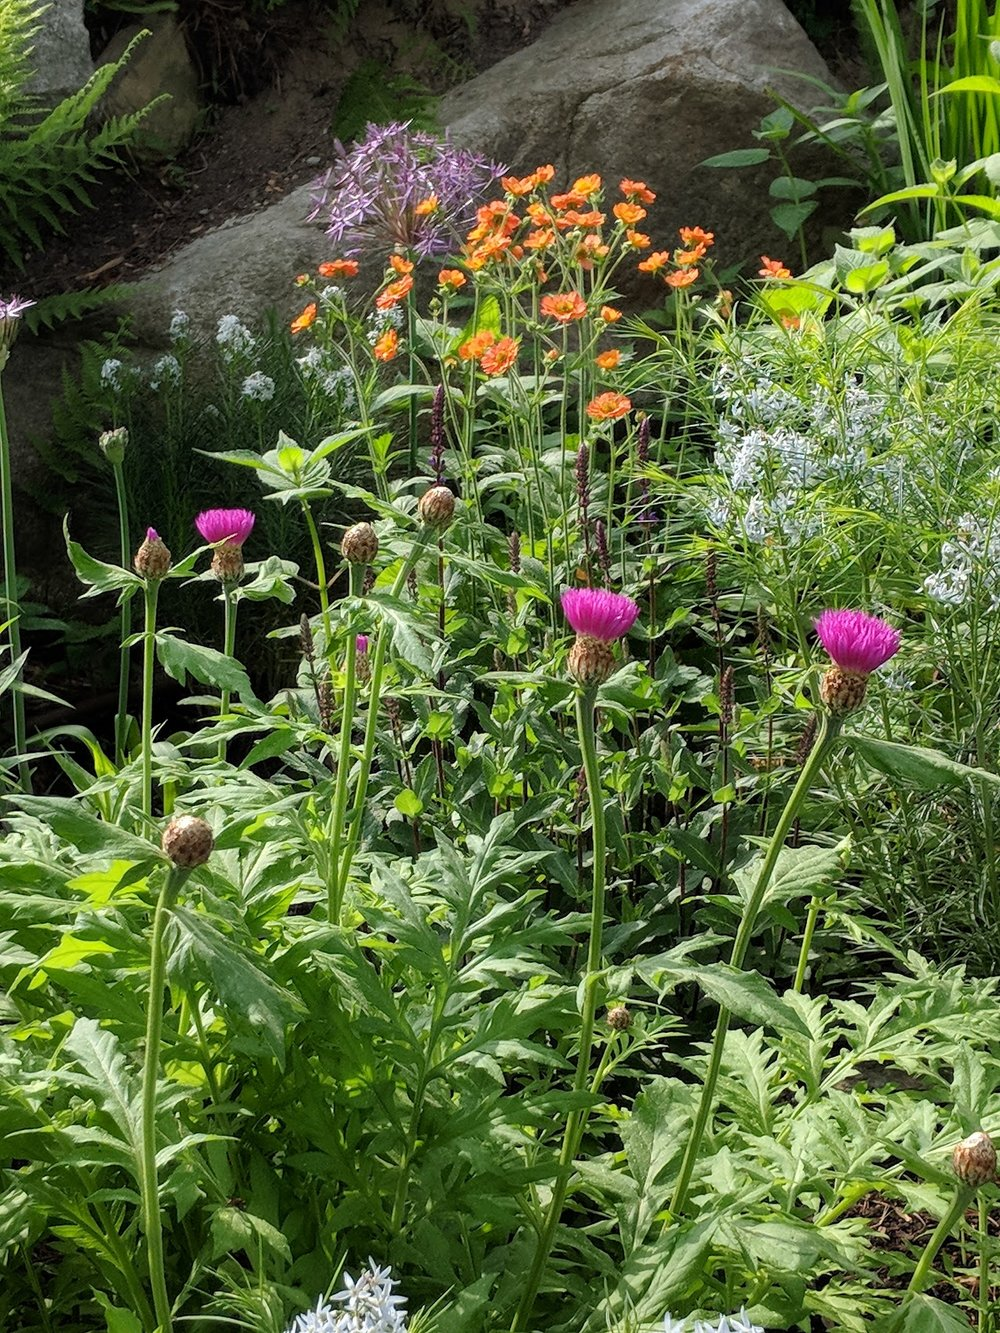 Knapweed, amsonia, geum & allium